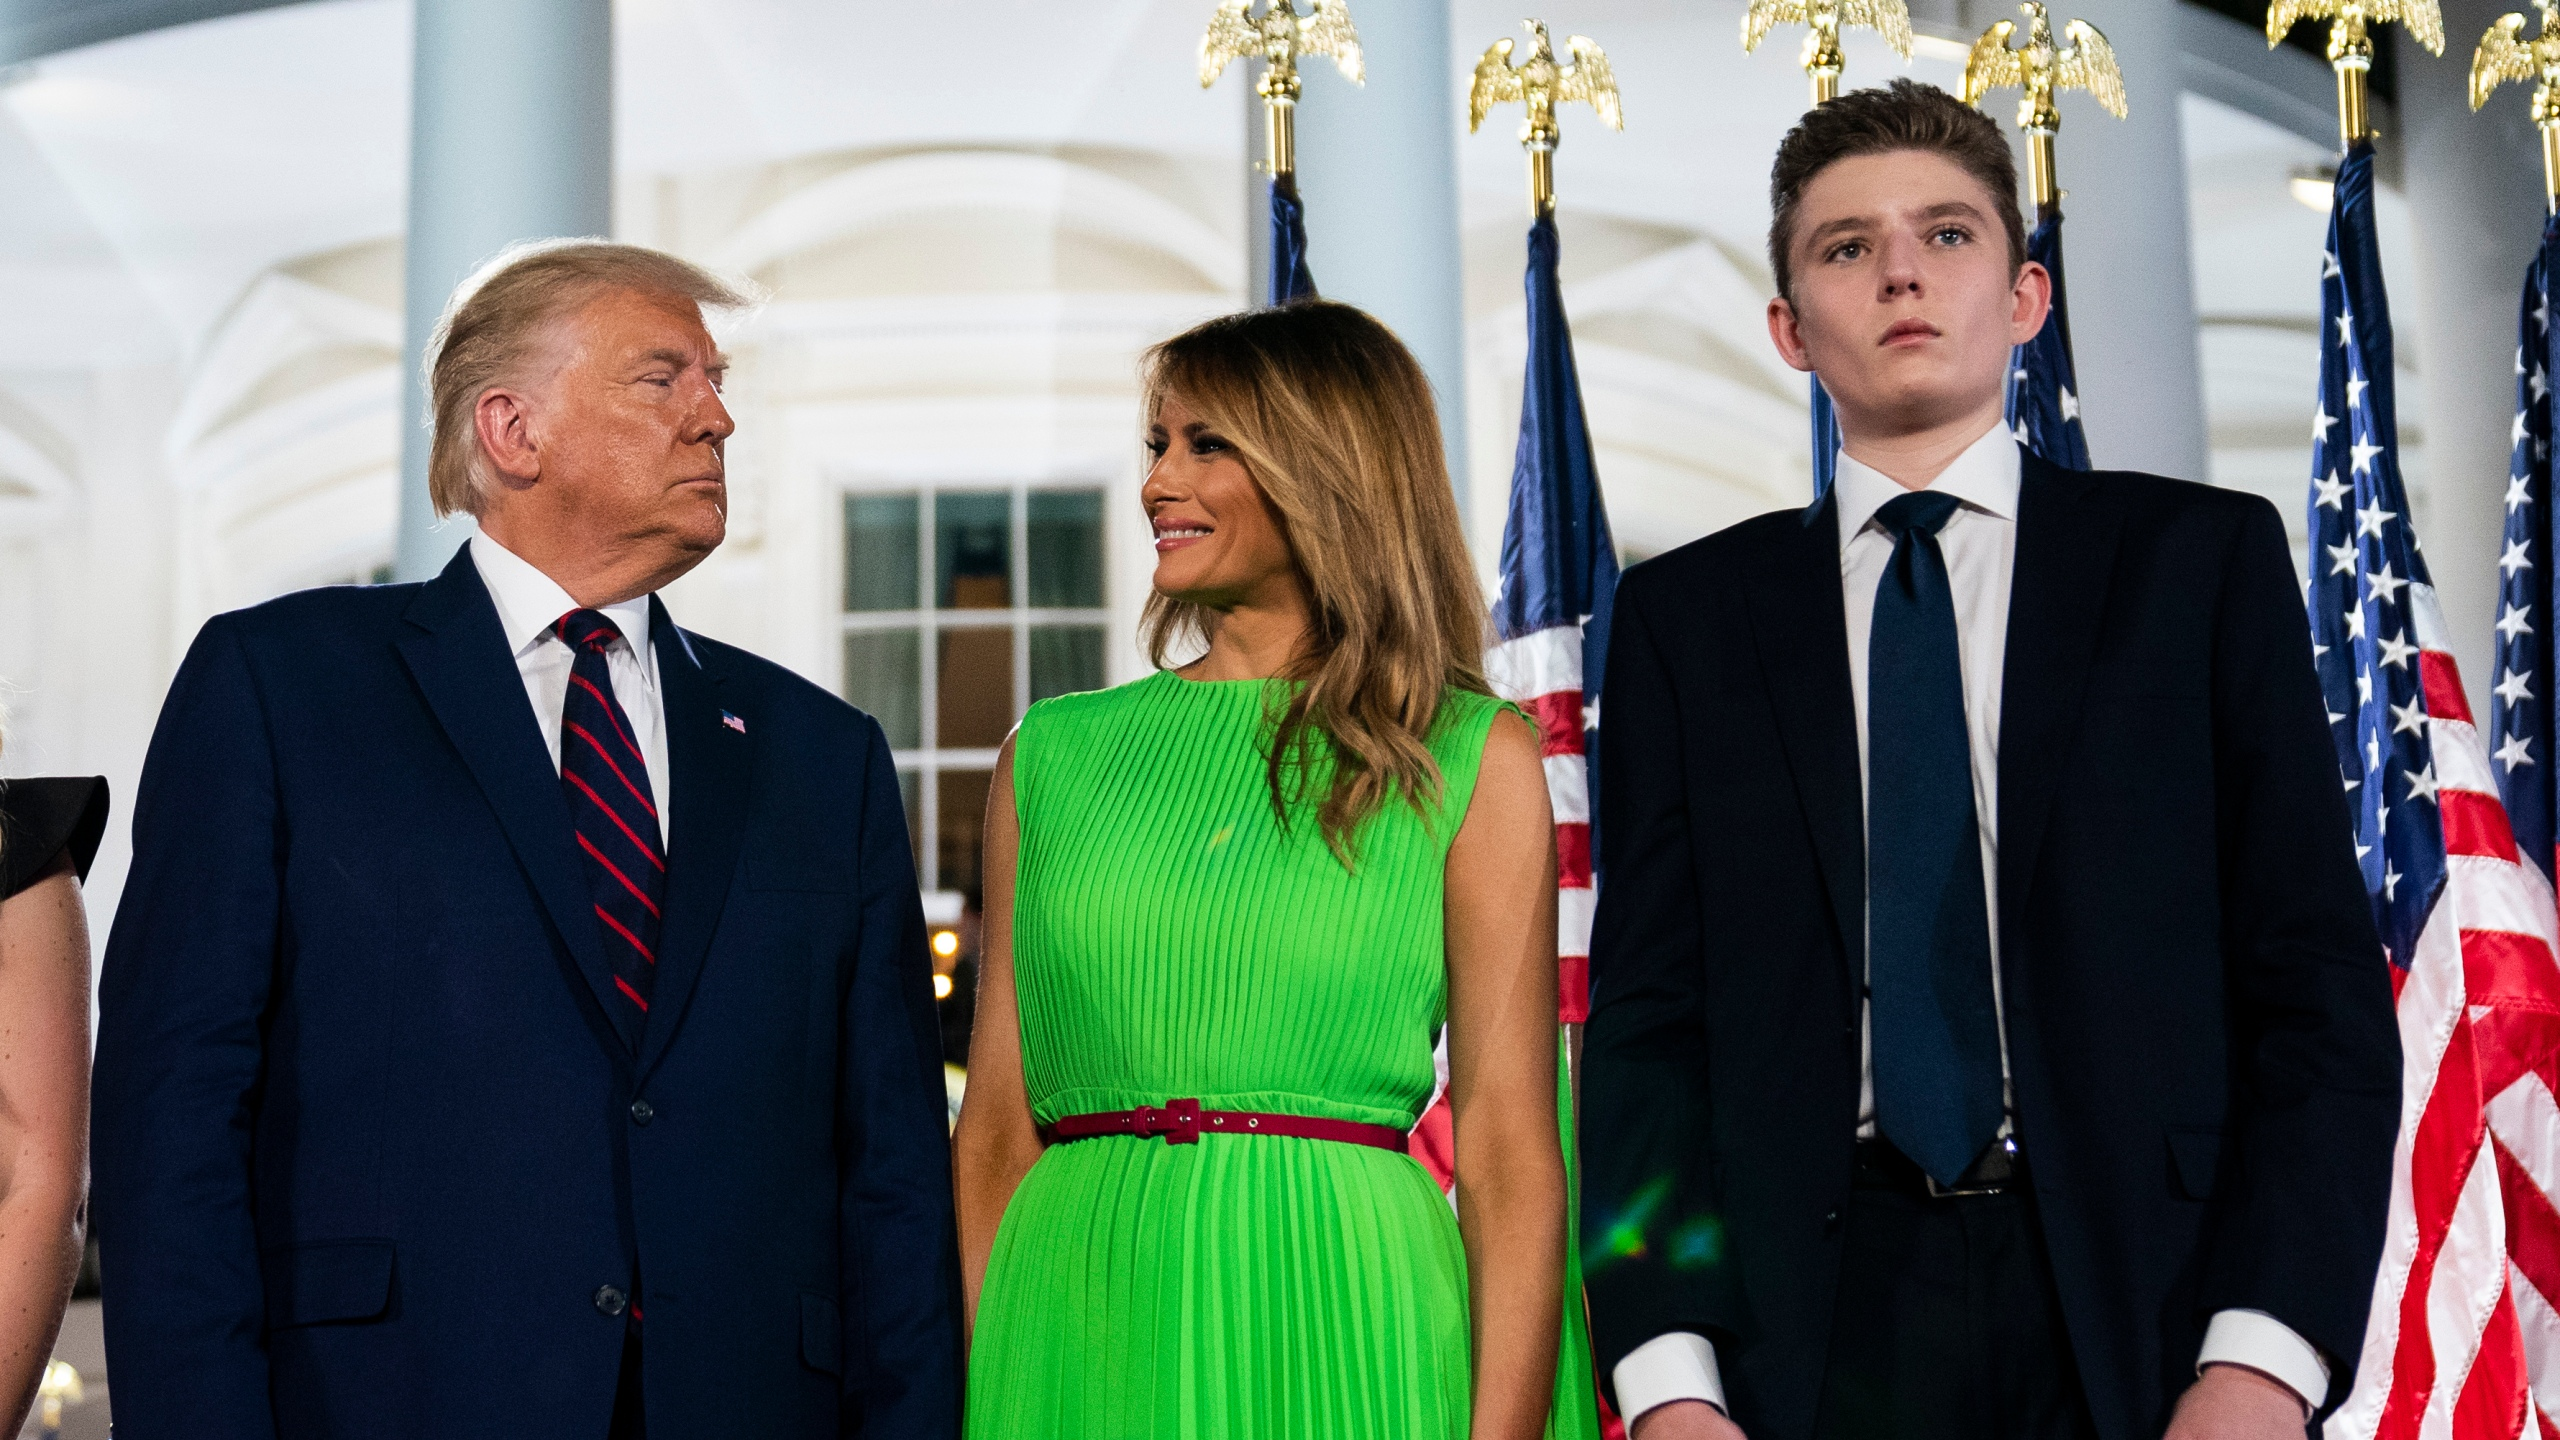 In this Aug. 27, 2020 file photo, Barron Trump right, stands with President Donald Trump and first lady Melania Trump on the South Lawn of the White House during the Republican National Convention (Evan Vucci/Associated Press)